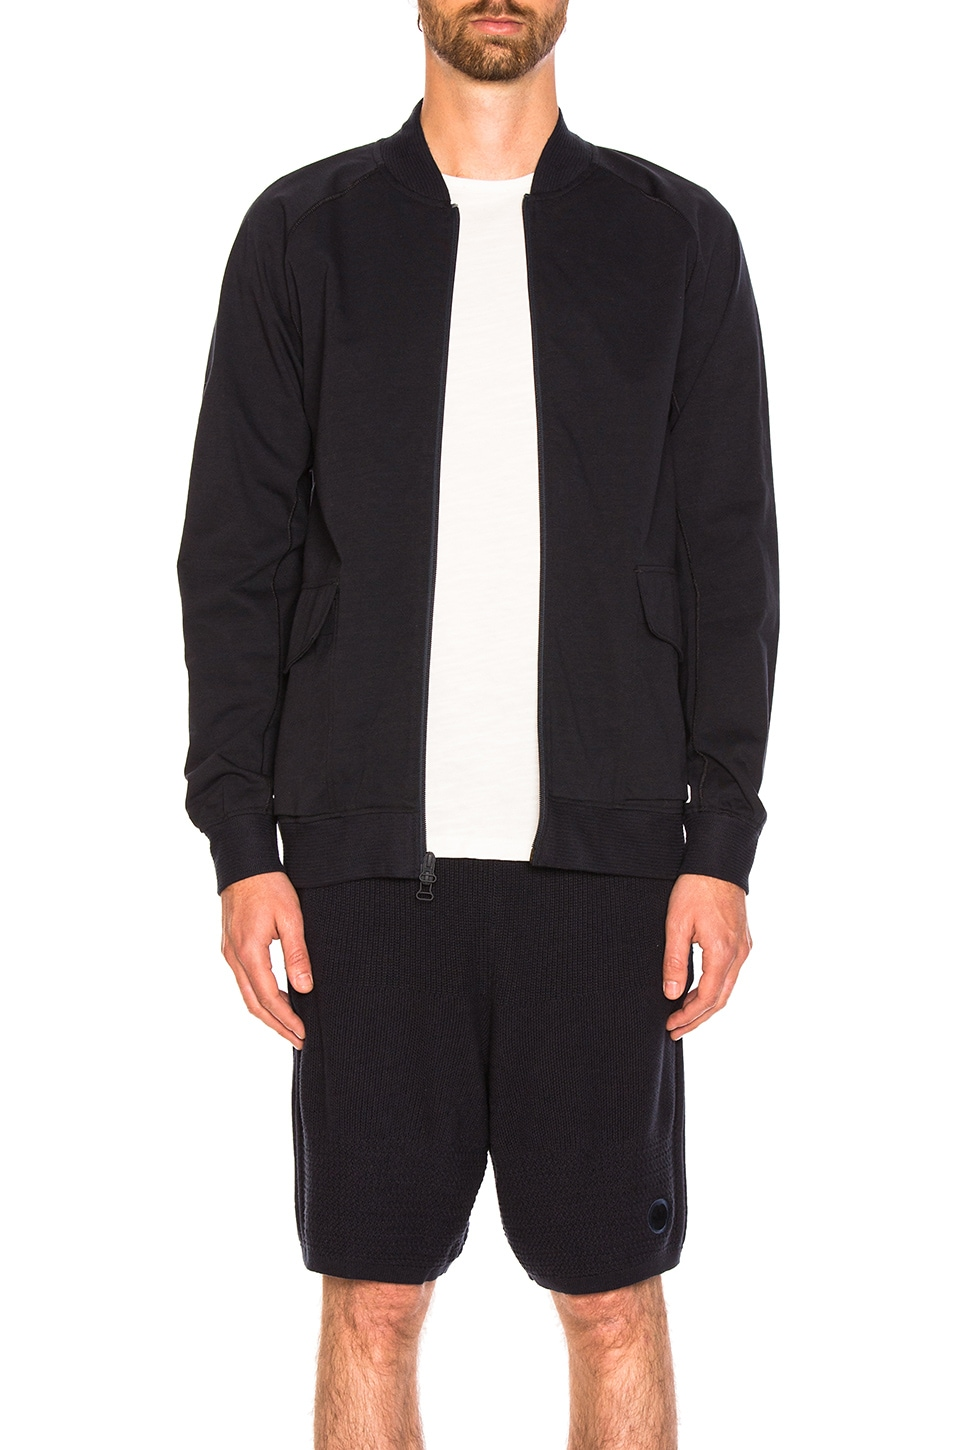 Superstar Tracktop by adidas by wings + horns